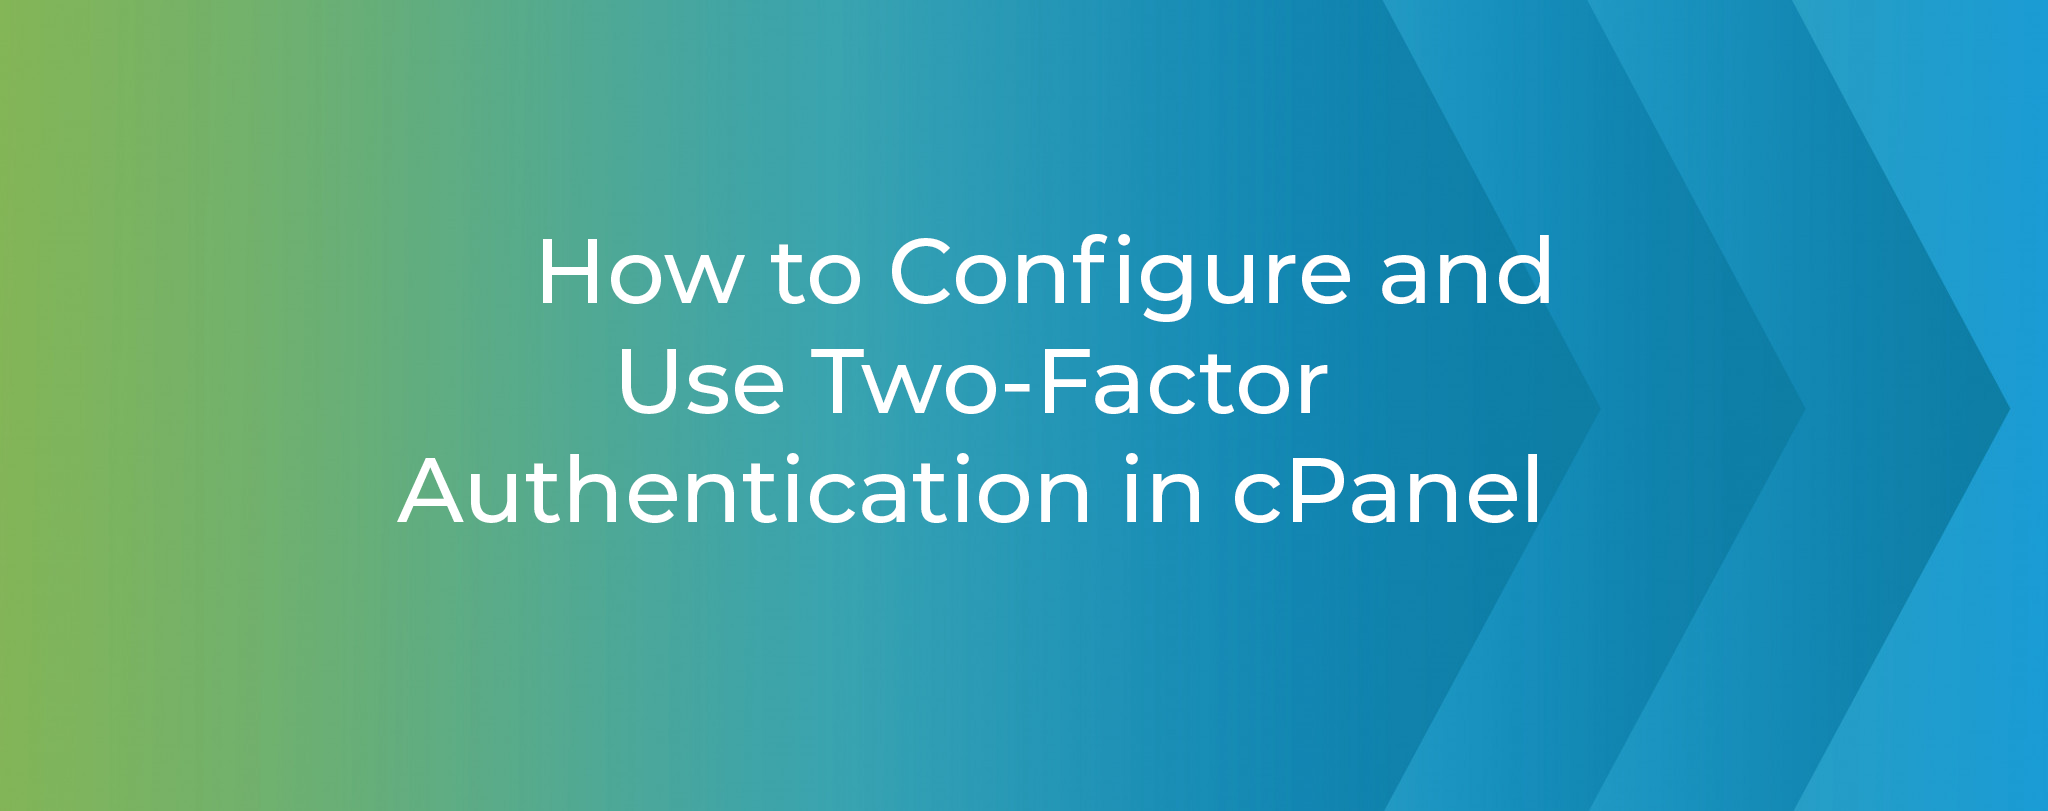 How to Configure and Use Two Factor Authentication in cPanel